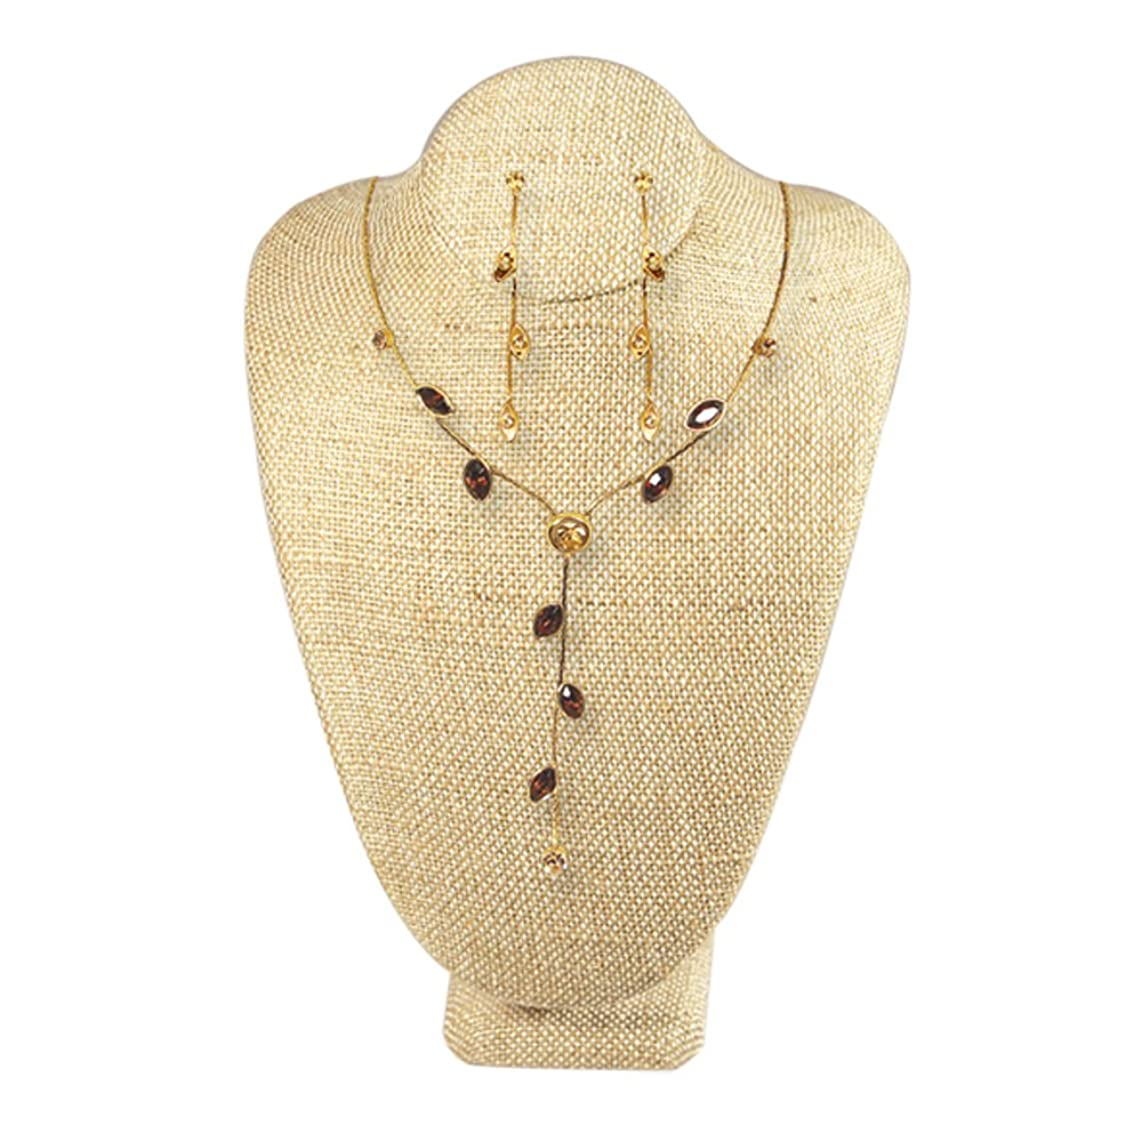 Ikee Design Wooden Lined Covered Jewelry Necklace Display Bust